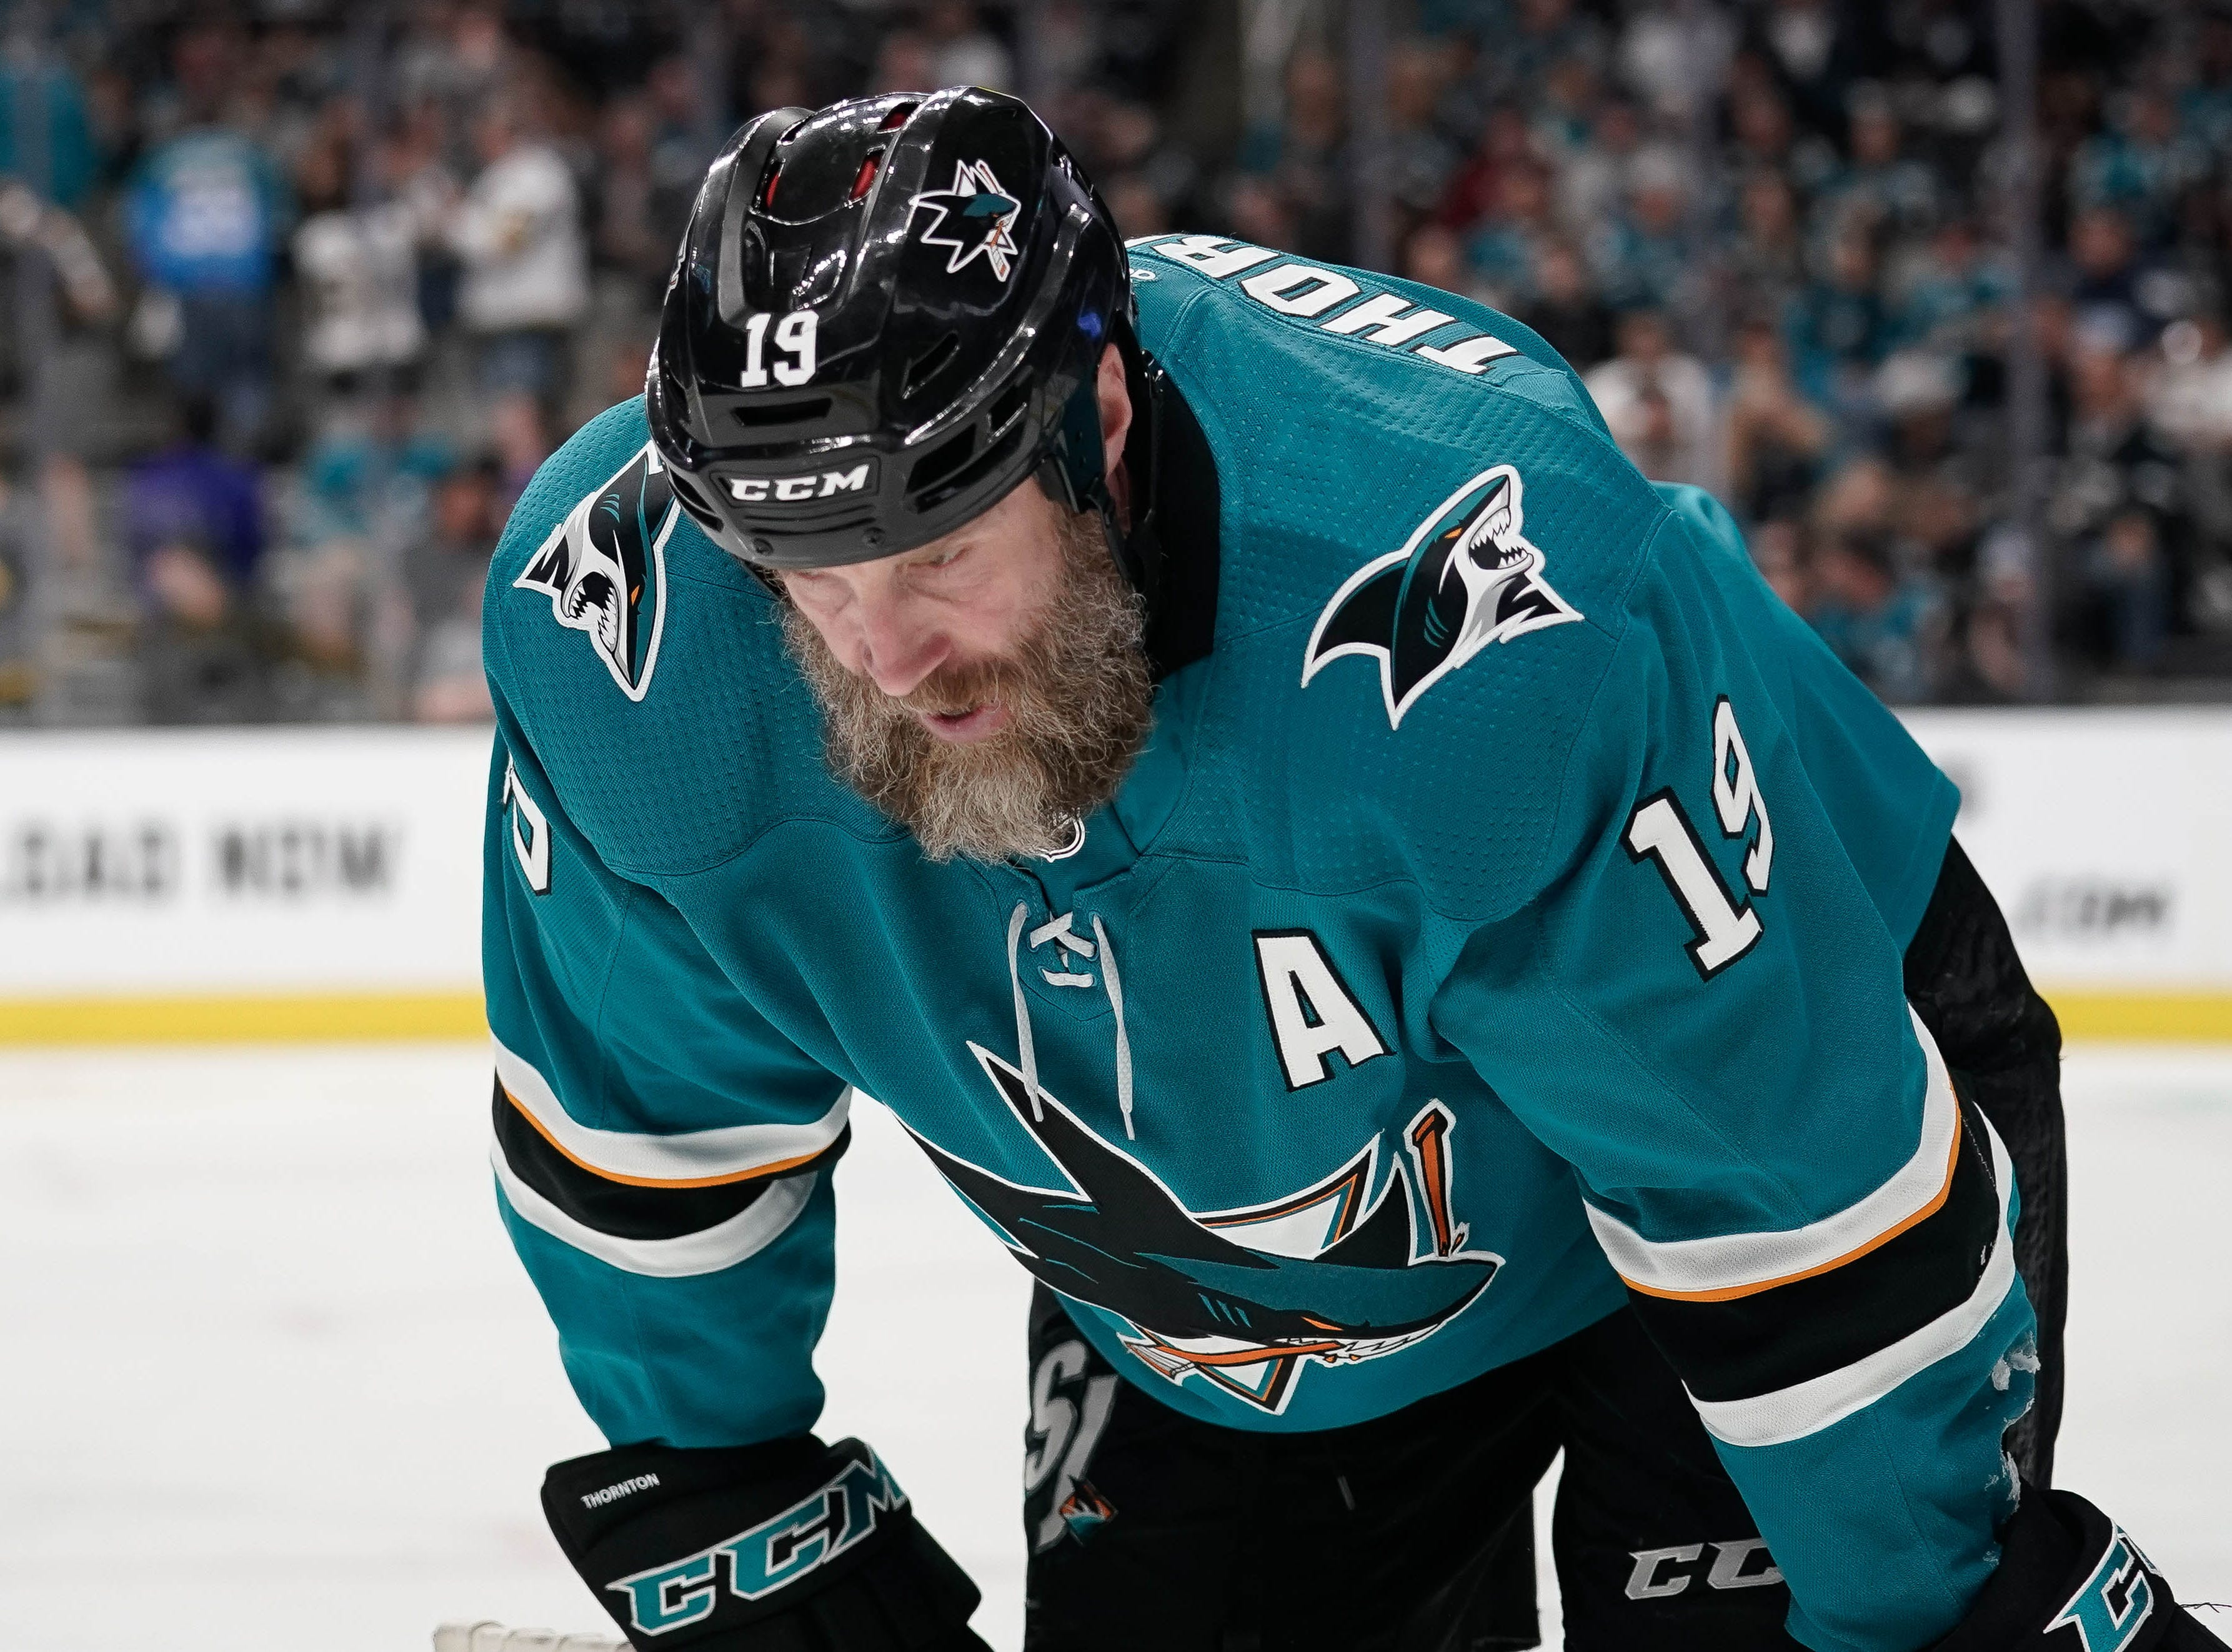 April 15: Sharks center Joe Thornton was suspended one playoff game for an illegal hit to the head of the Vegas Golden Knights' Tomas Nosek.